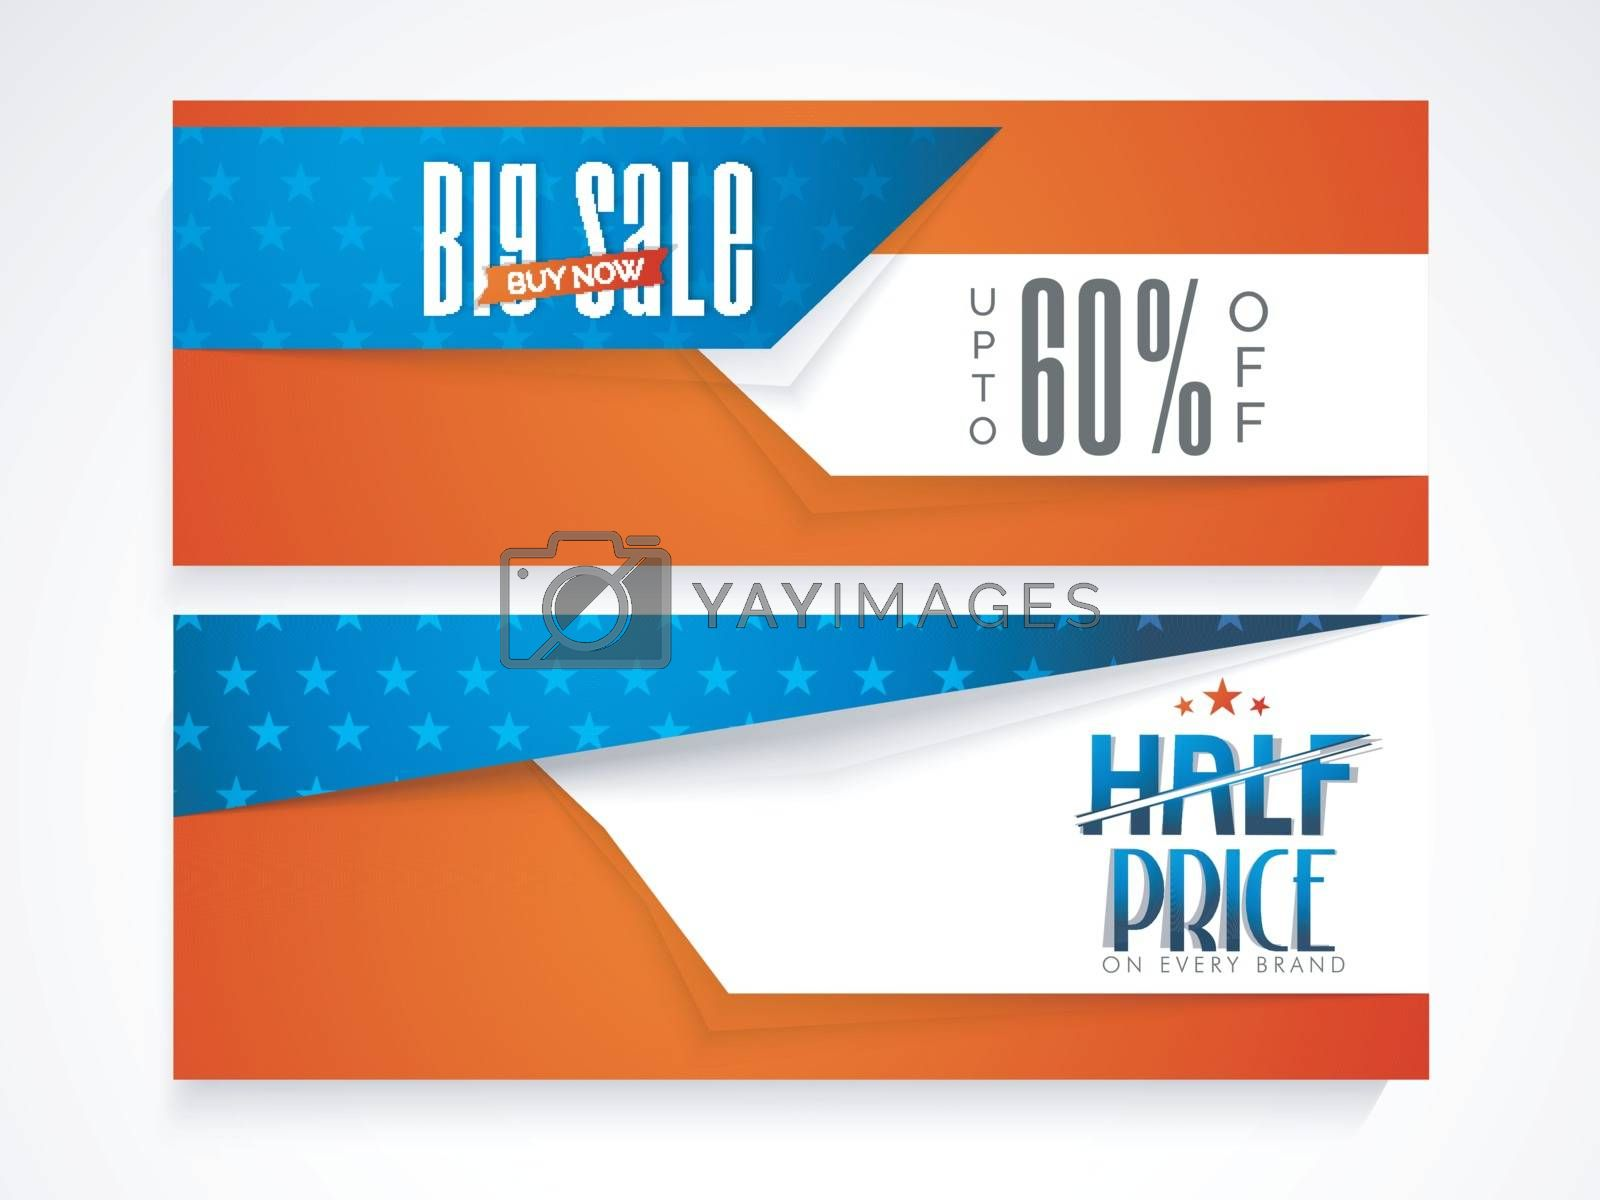 Half Price Big Sale with upto 60% off, American Flag colors website headers set for 4th of July, Independence Day concept.